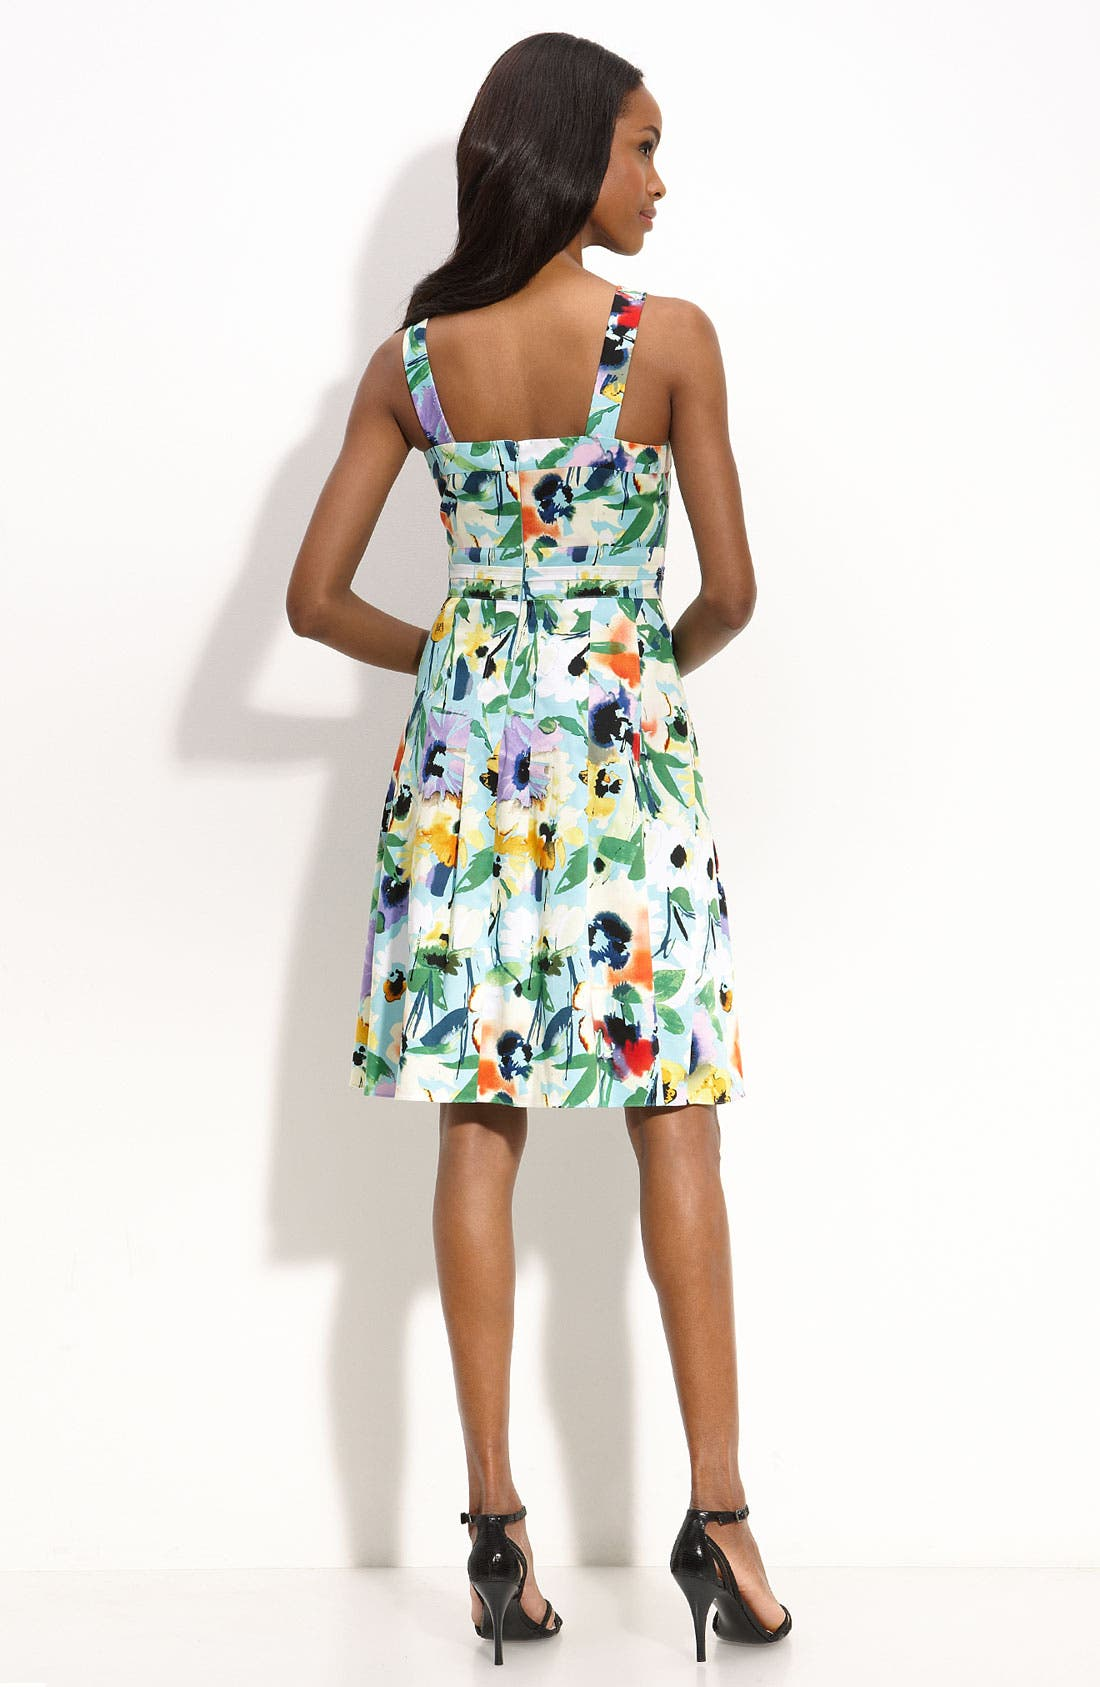 ADRIANNA PAPELL,                             Floral Print Party Dress,                             Alternate thumbnail 2, color,                             441